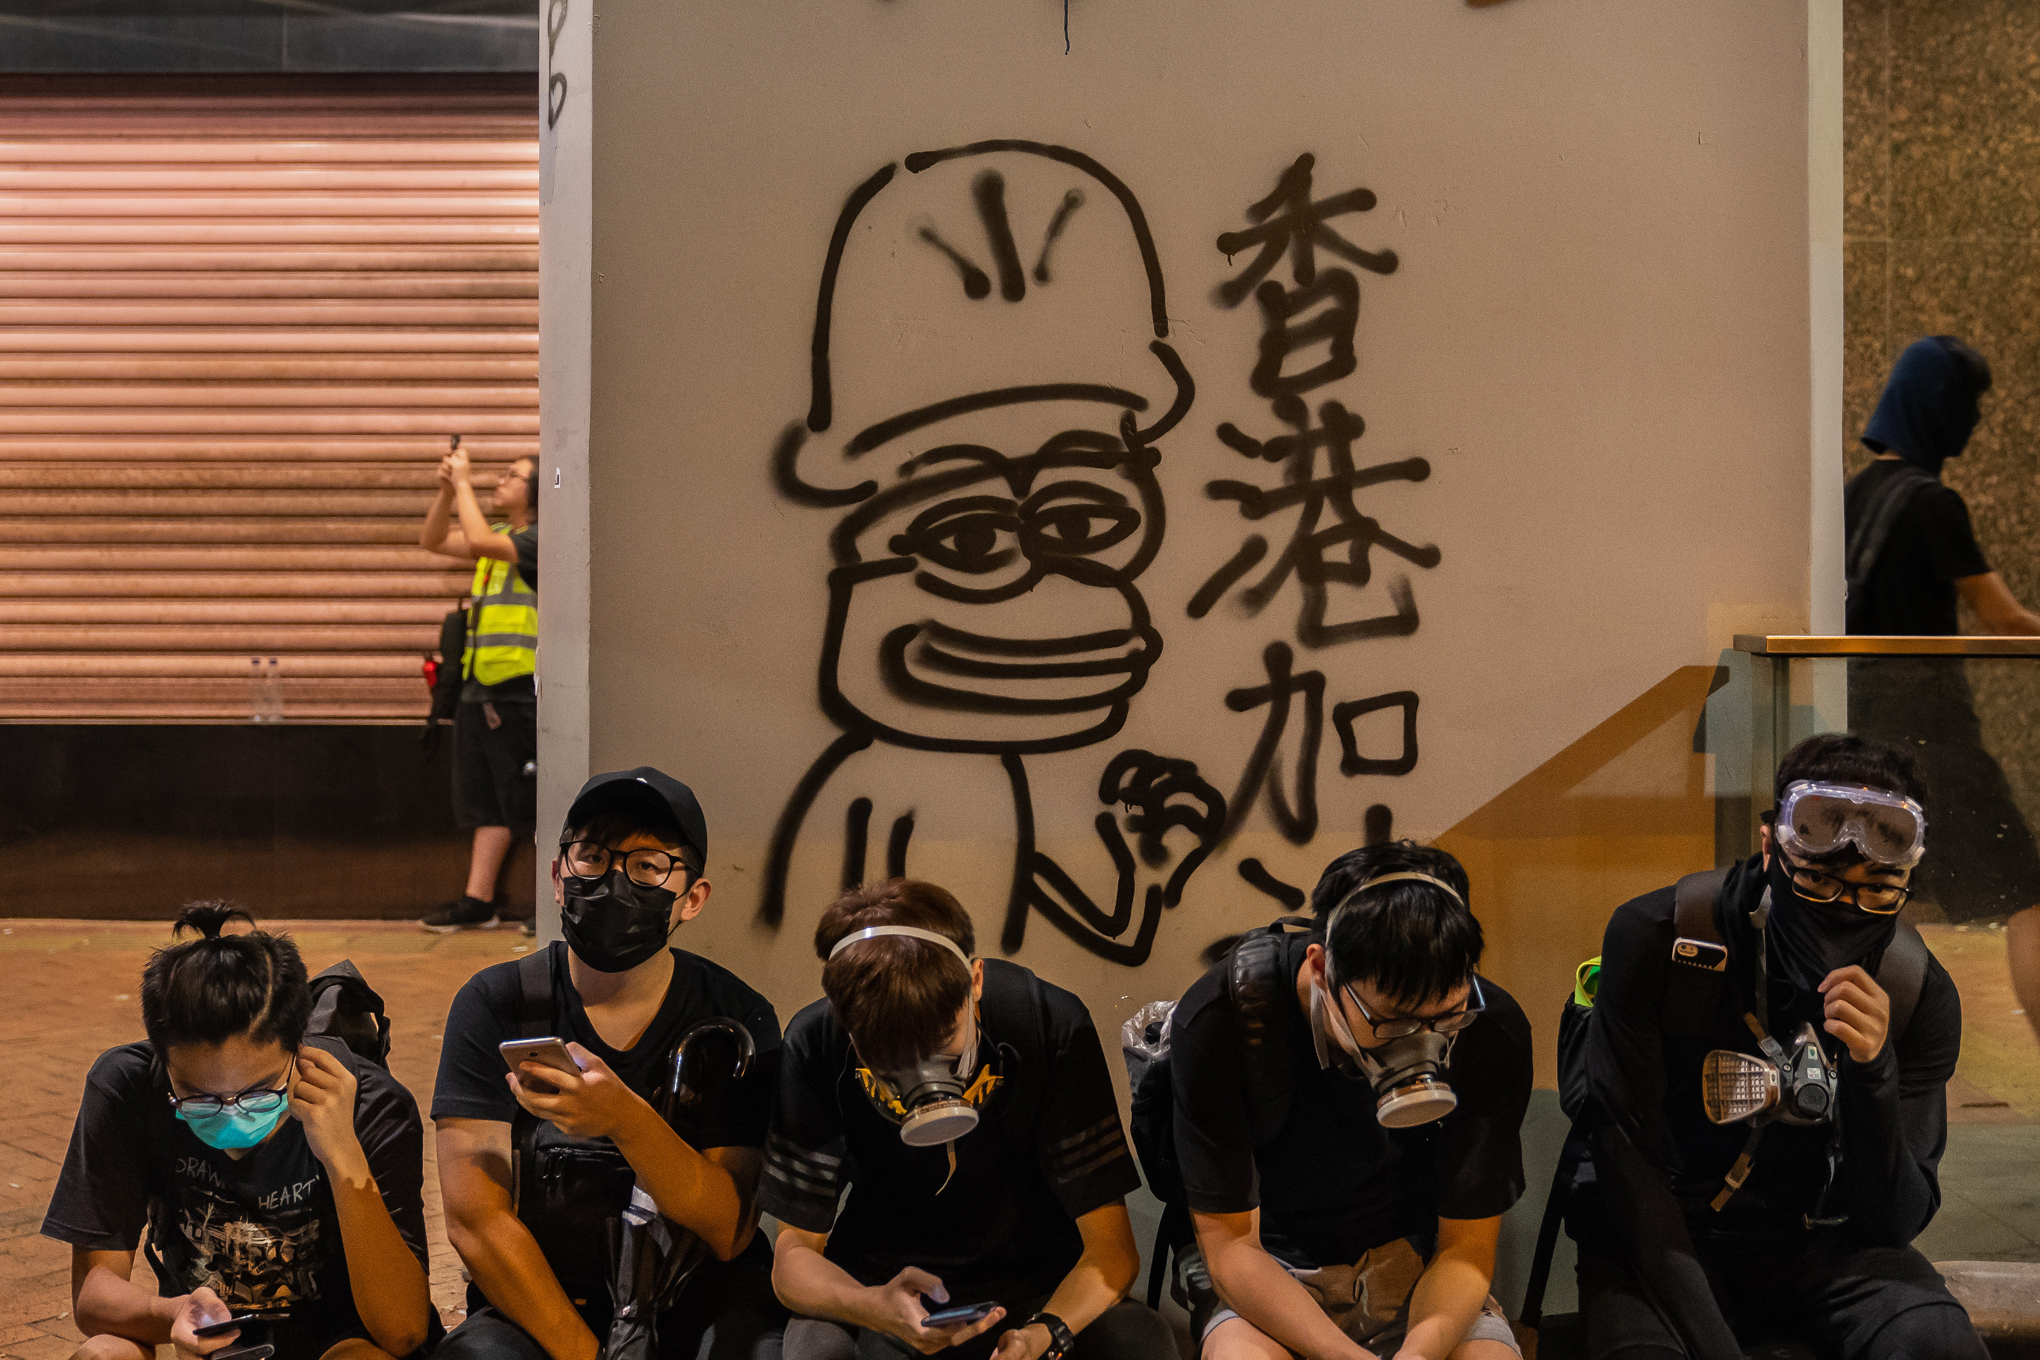 Masked Hong Kong protesters sit in front of graffiti of Pepe the Frog